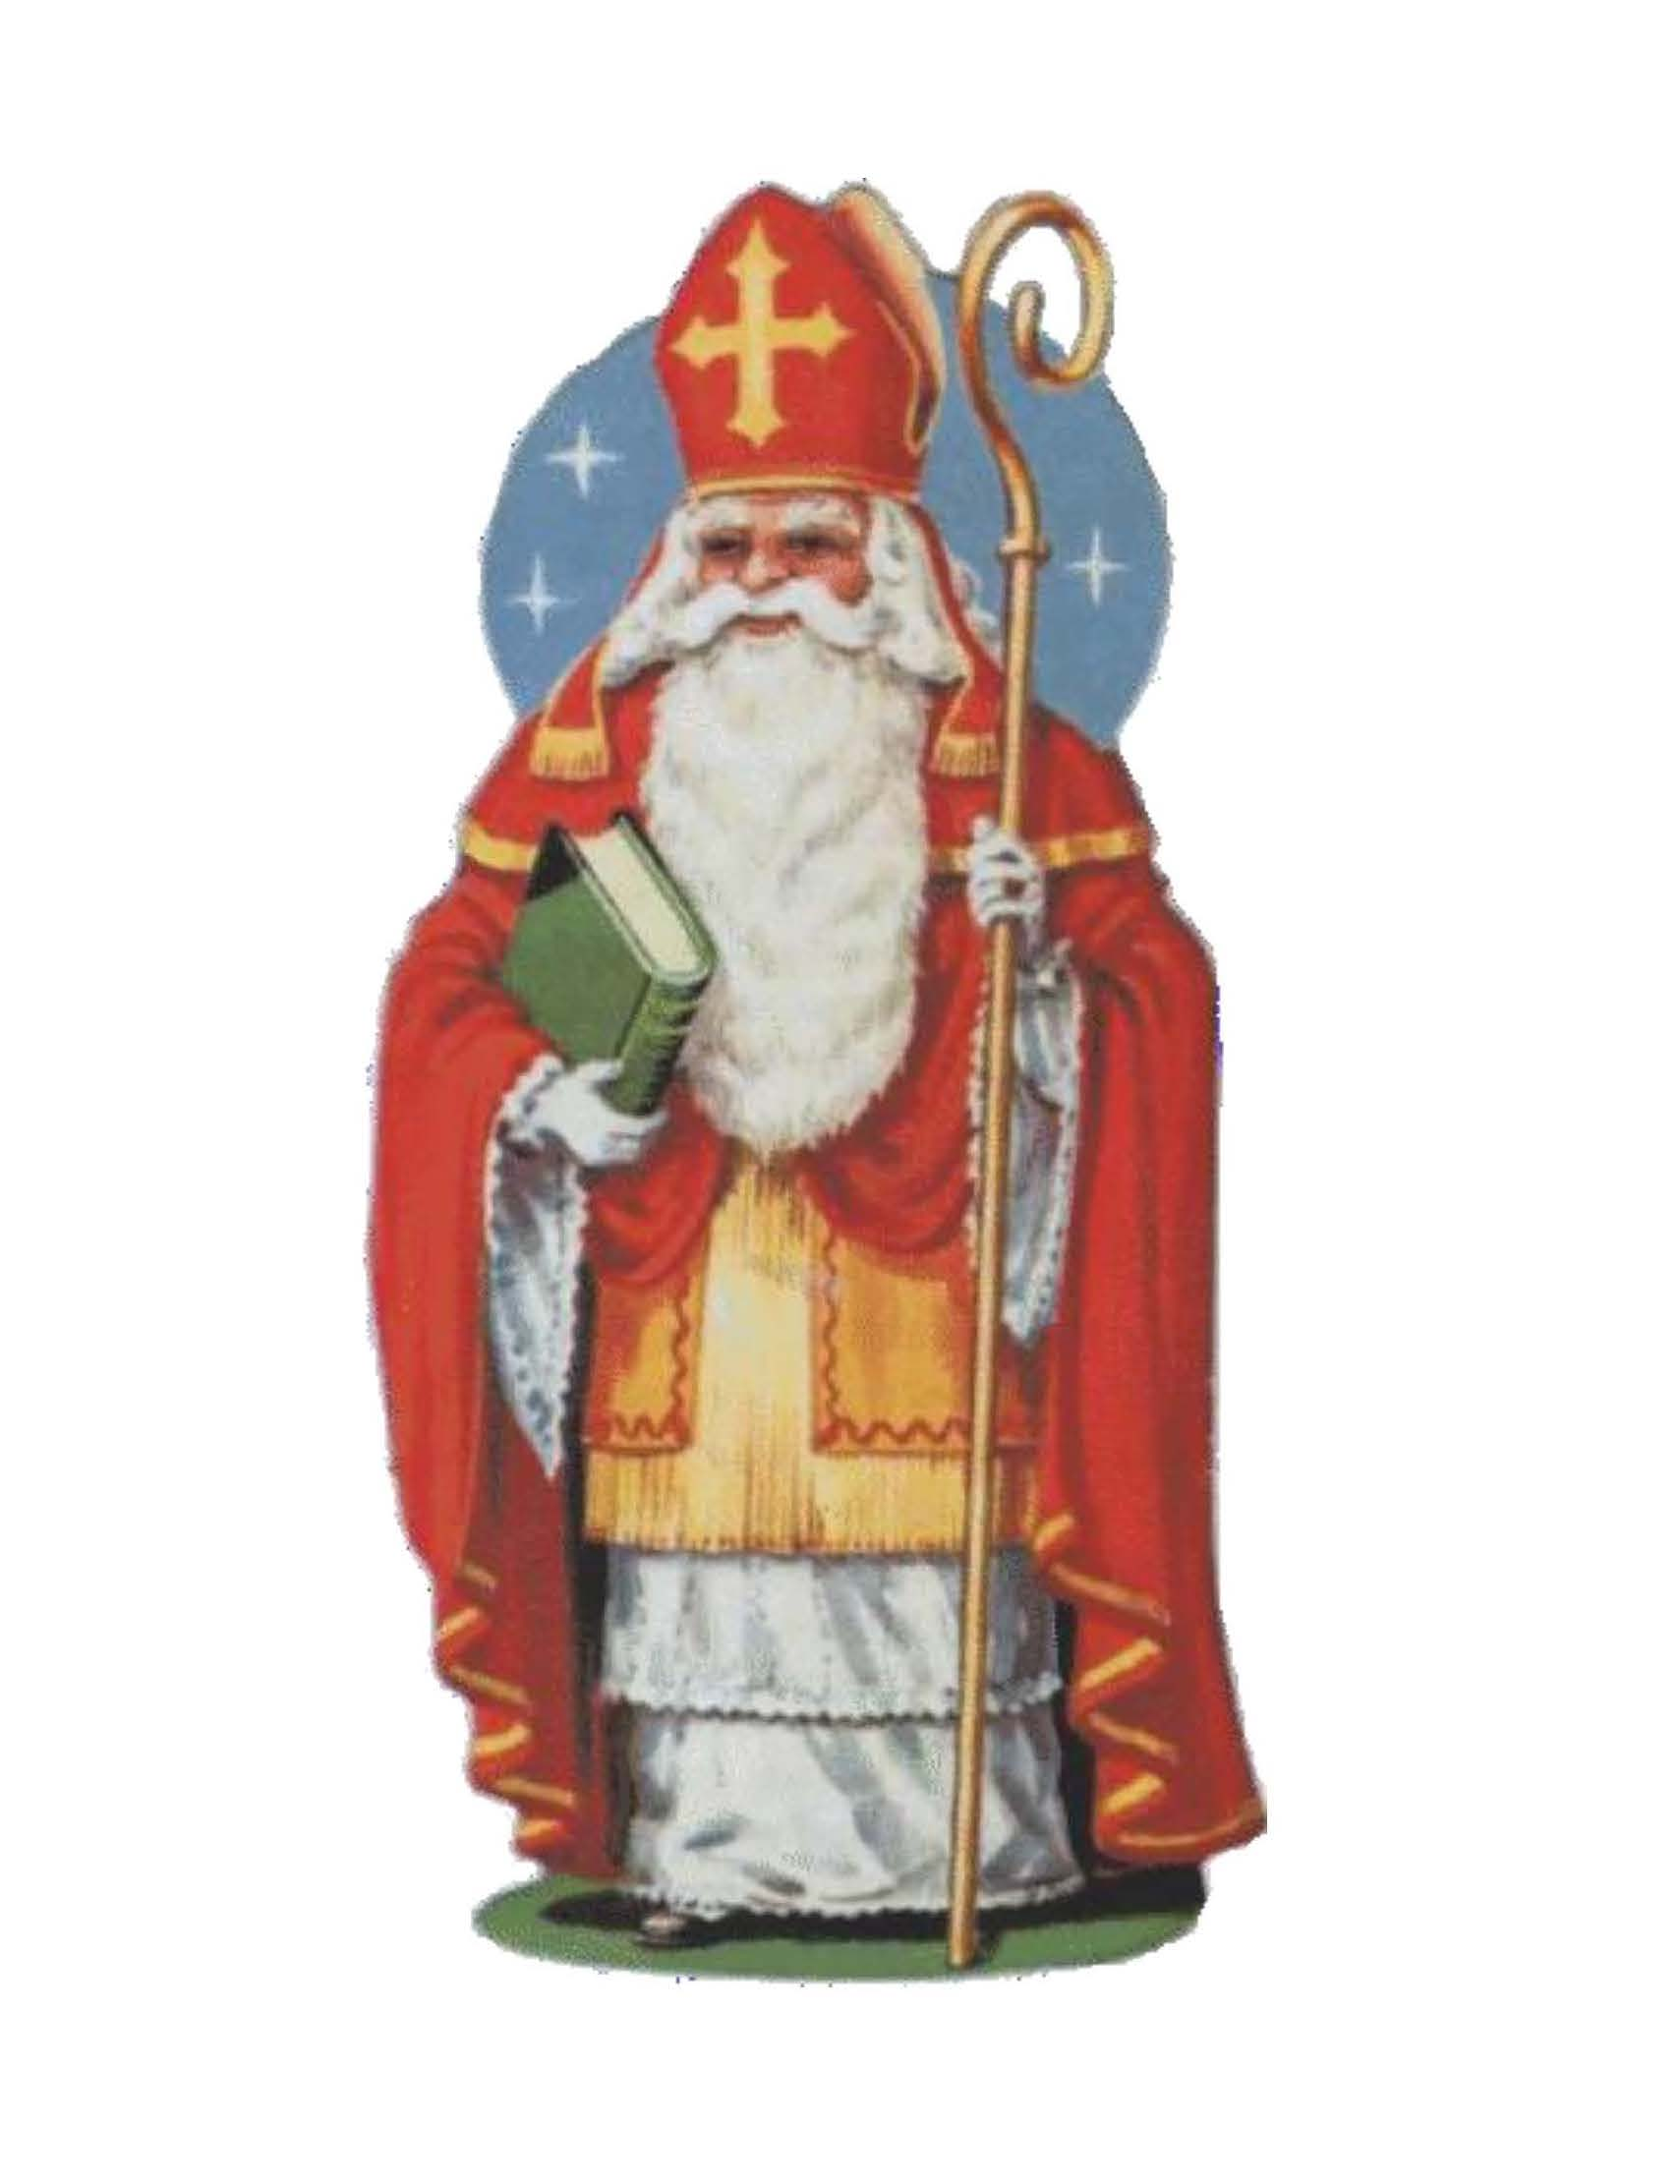 St Nicholas Celebration >> Saint Nicholas Byzantine Catholic Church - Annual St. Nicholas Day Celebration